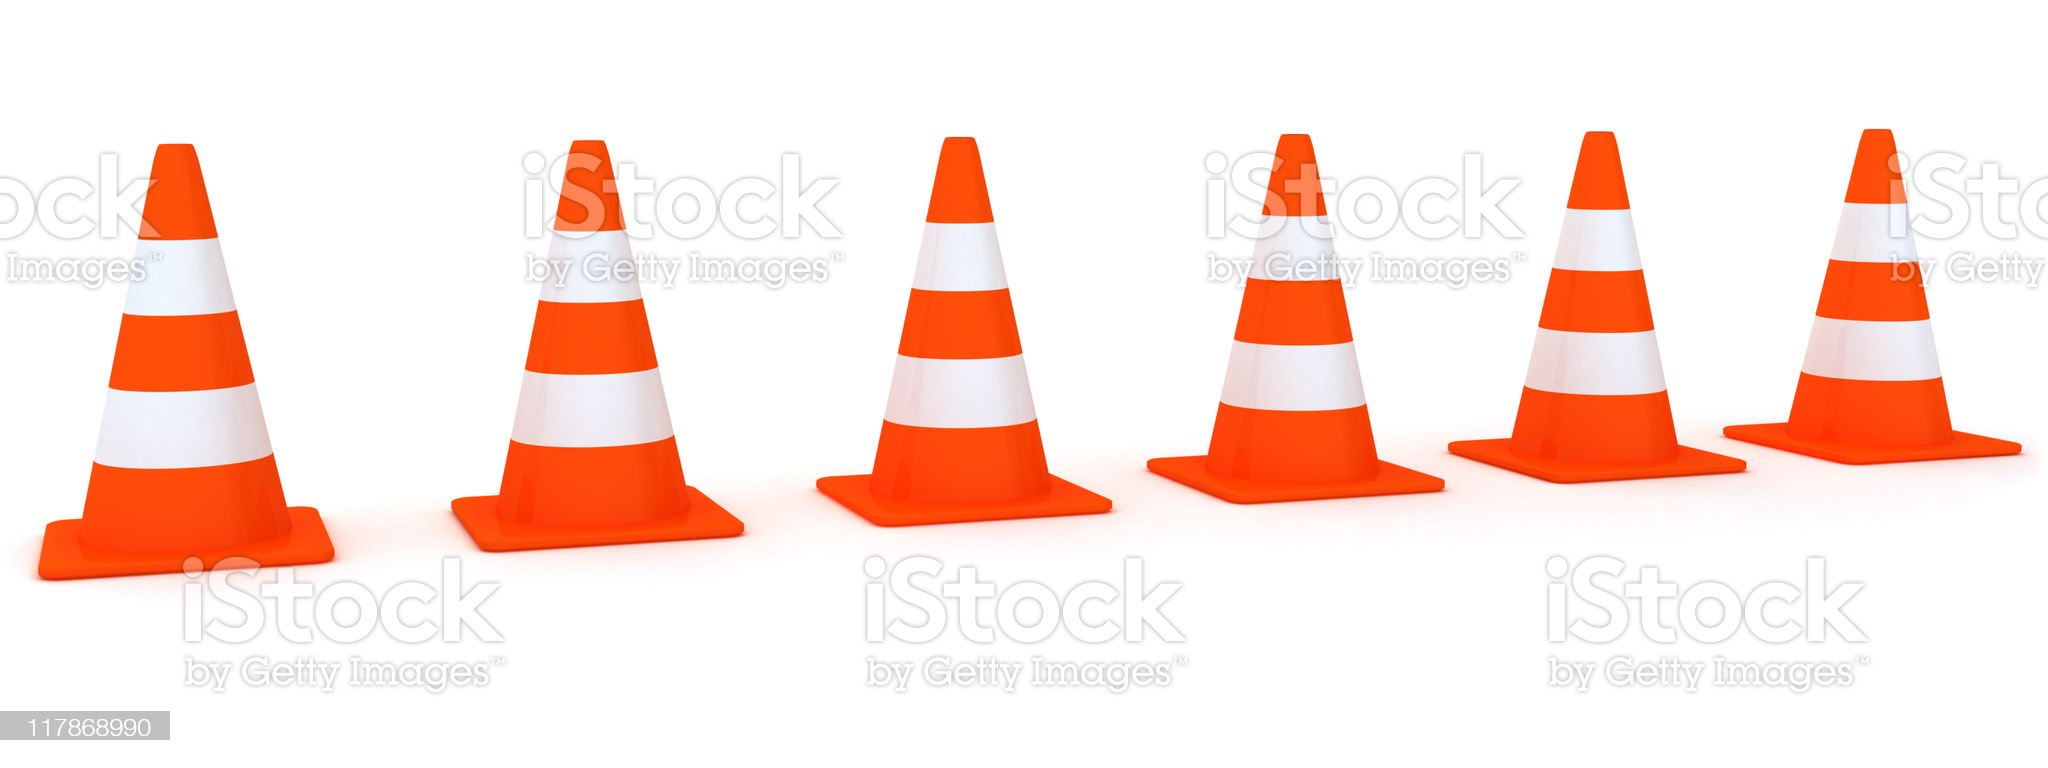 Line from Traffic Cones royalty-free stock vector art